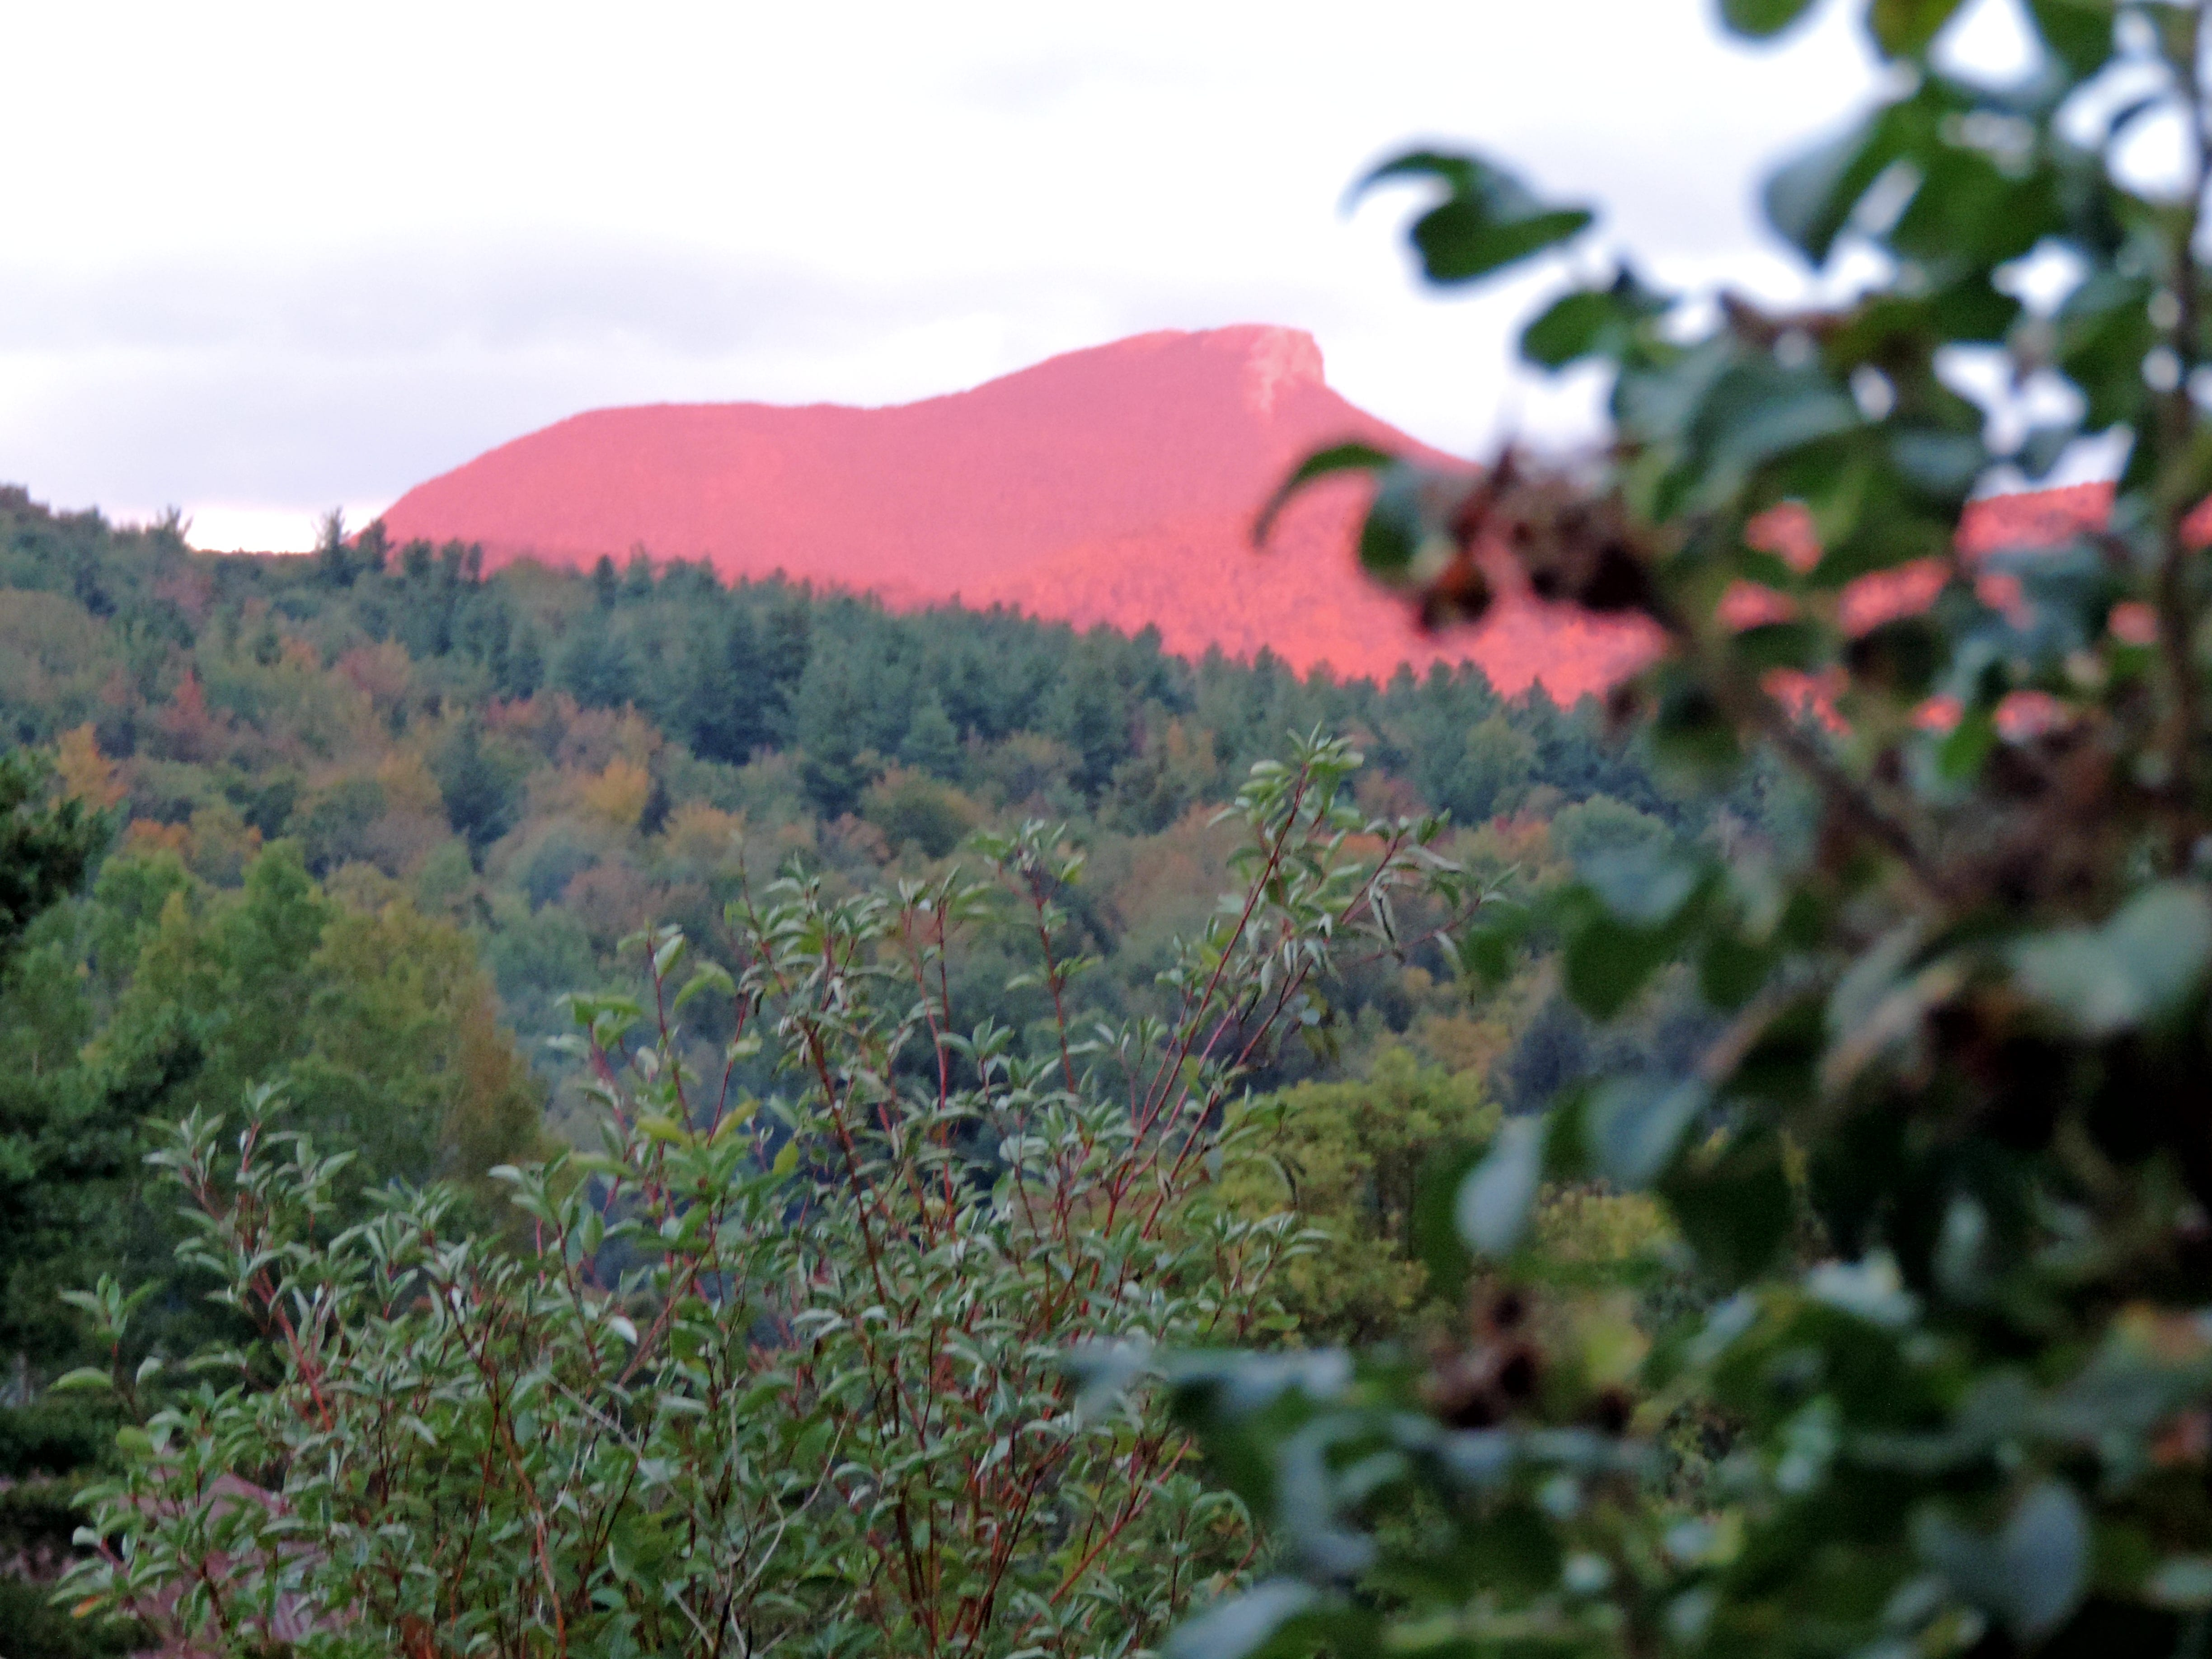 Mark Hill of Huntington submitted this photo of the sun lights up Camel's Hump on Sept. 29, 2018, seen from his home in Huntington.